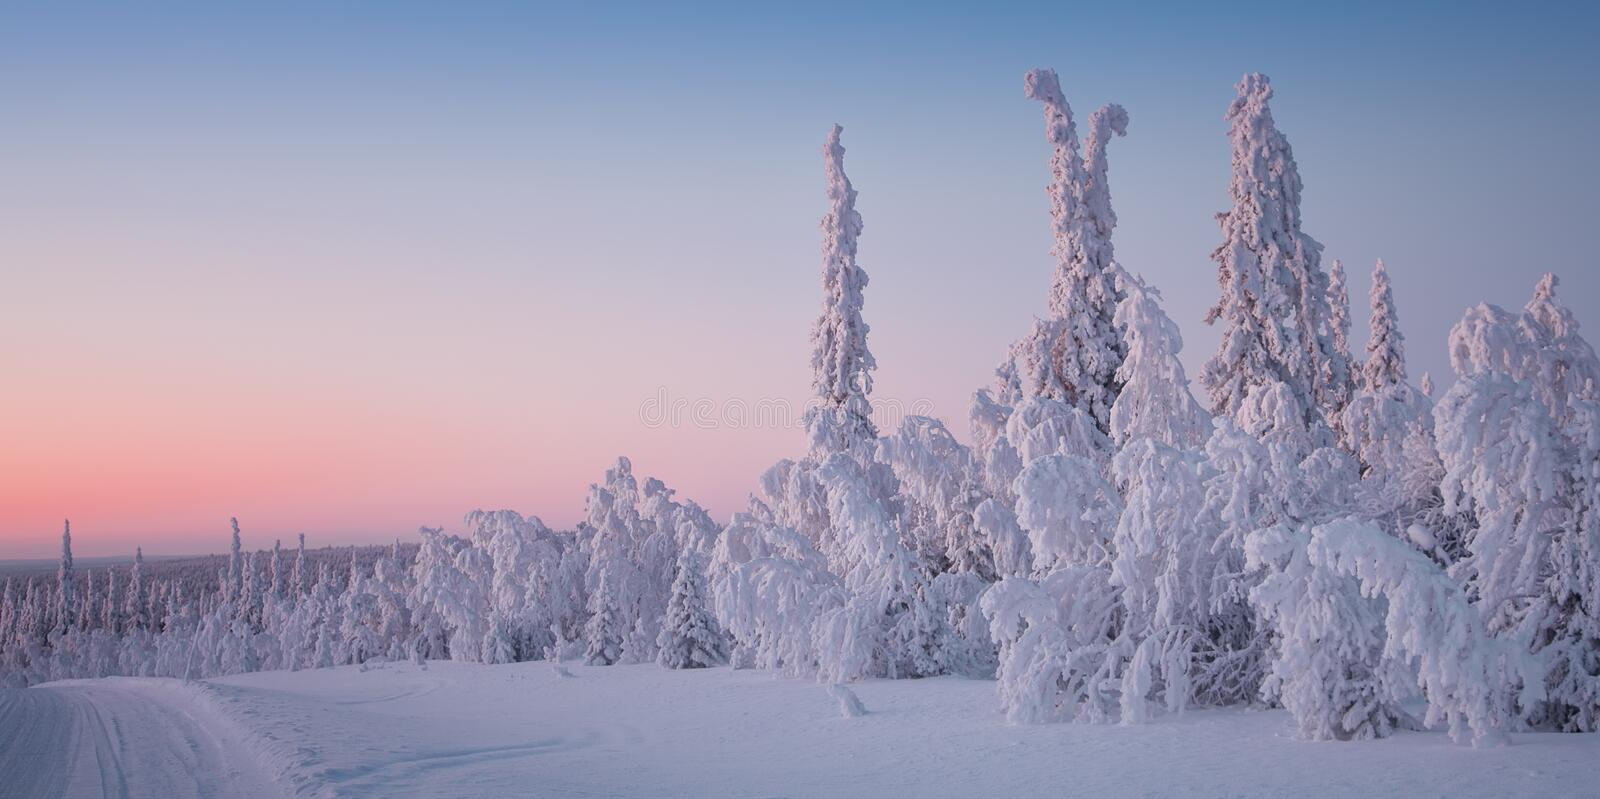 Mooi de winterlandschap in Lapland Finland royalty-vrije stock foto's